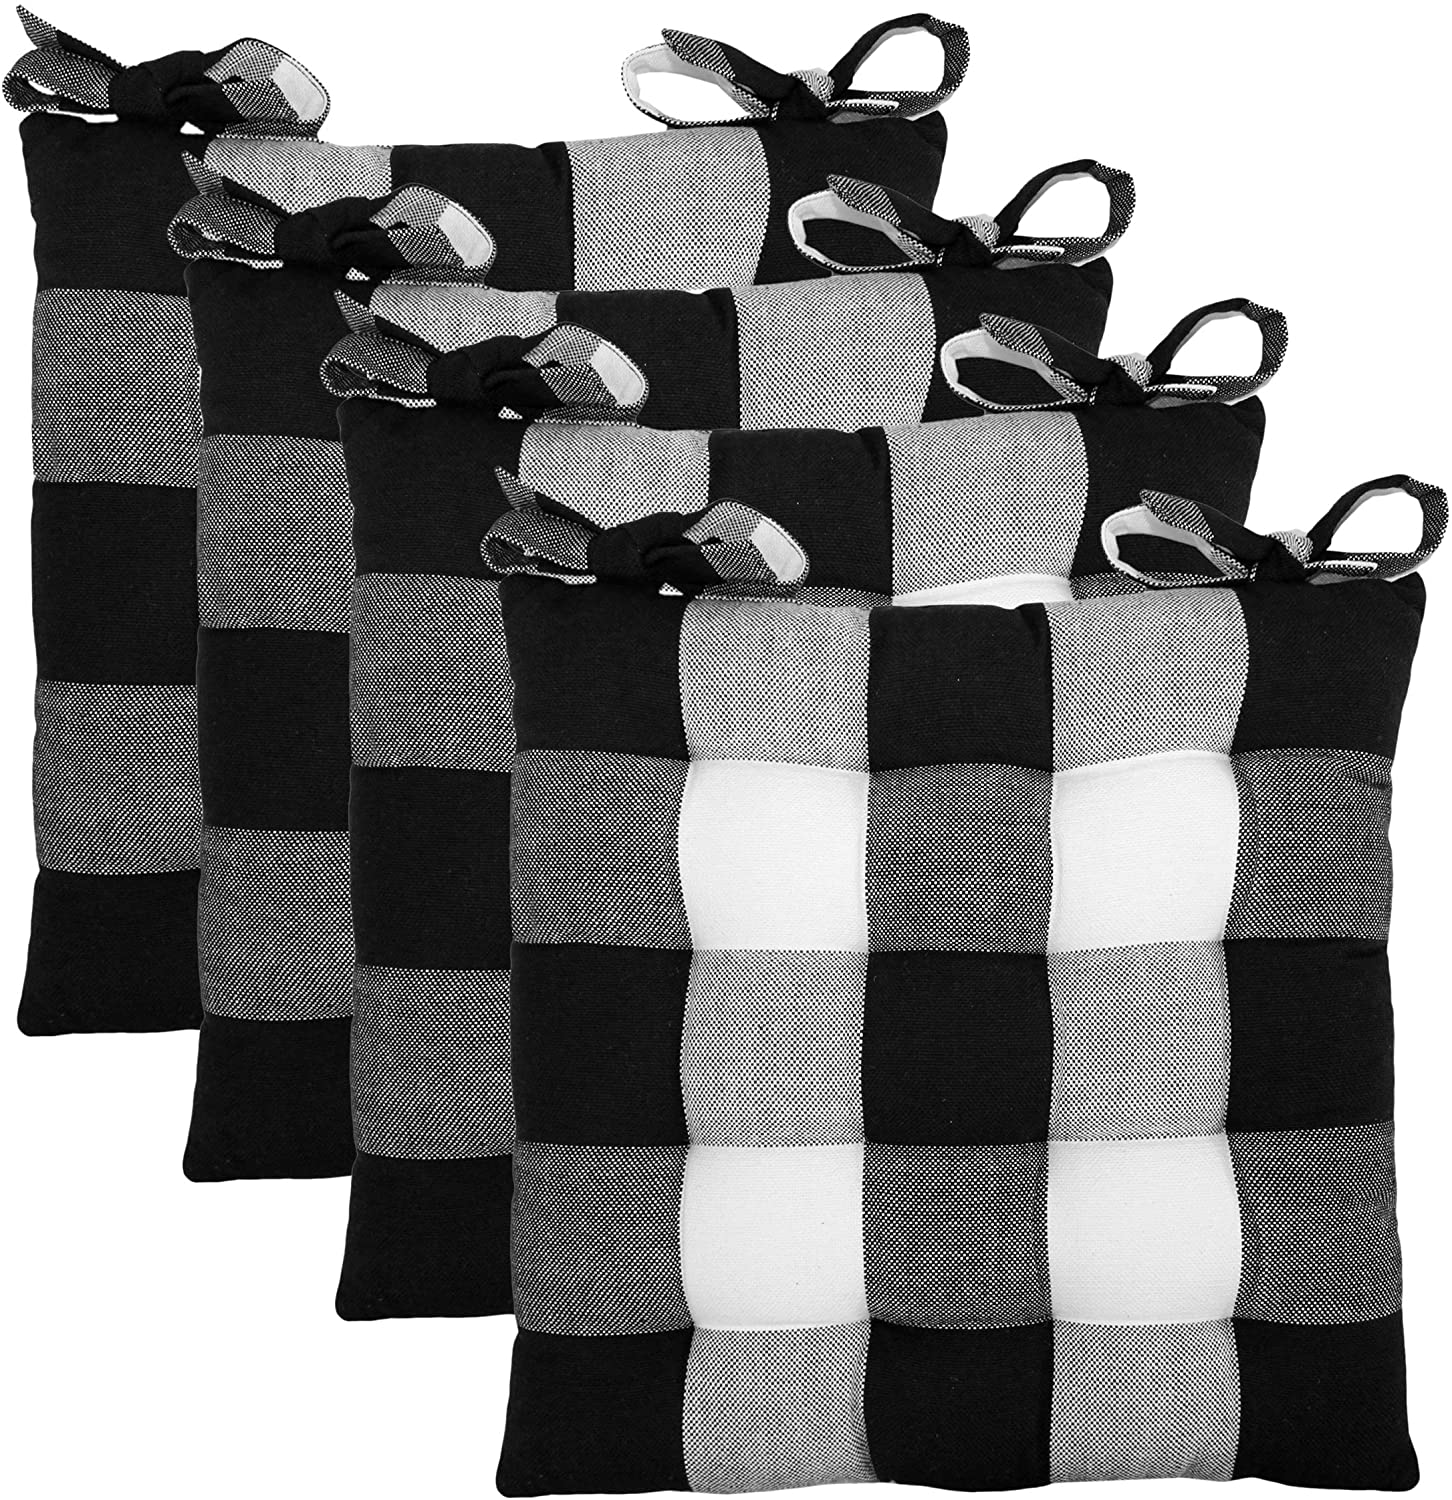 COTTON CRAFT Countryside Set of 4 Dining/Kitchen Chair Pads with Ties, 17x17 inch Black Buffalo Check: Home & Kitchen